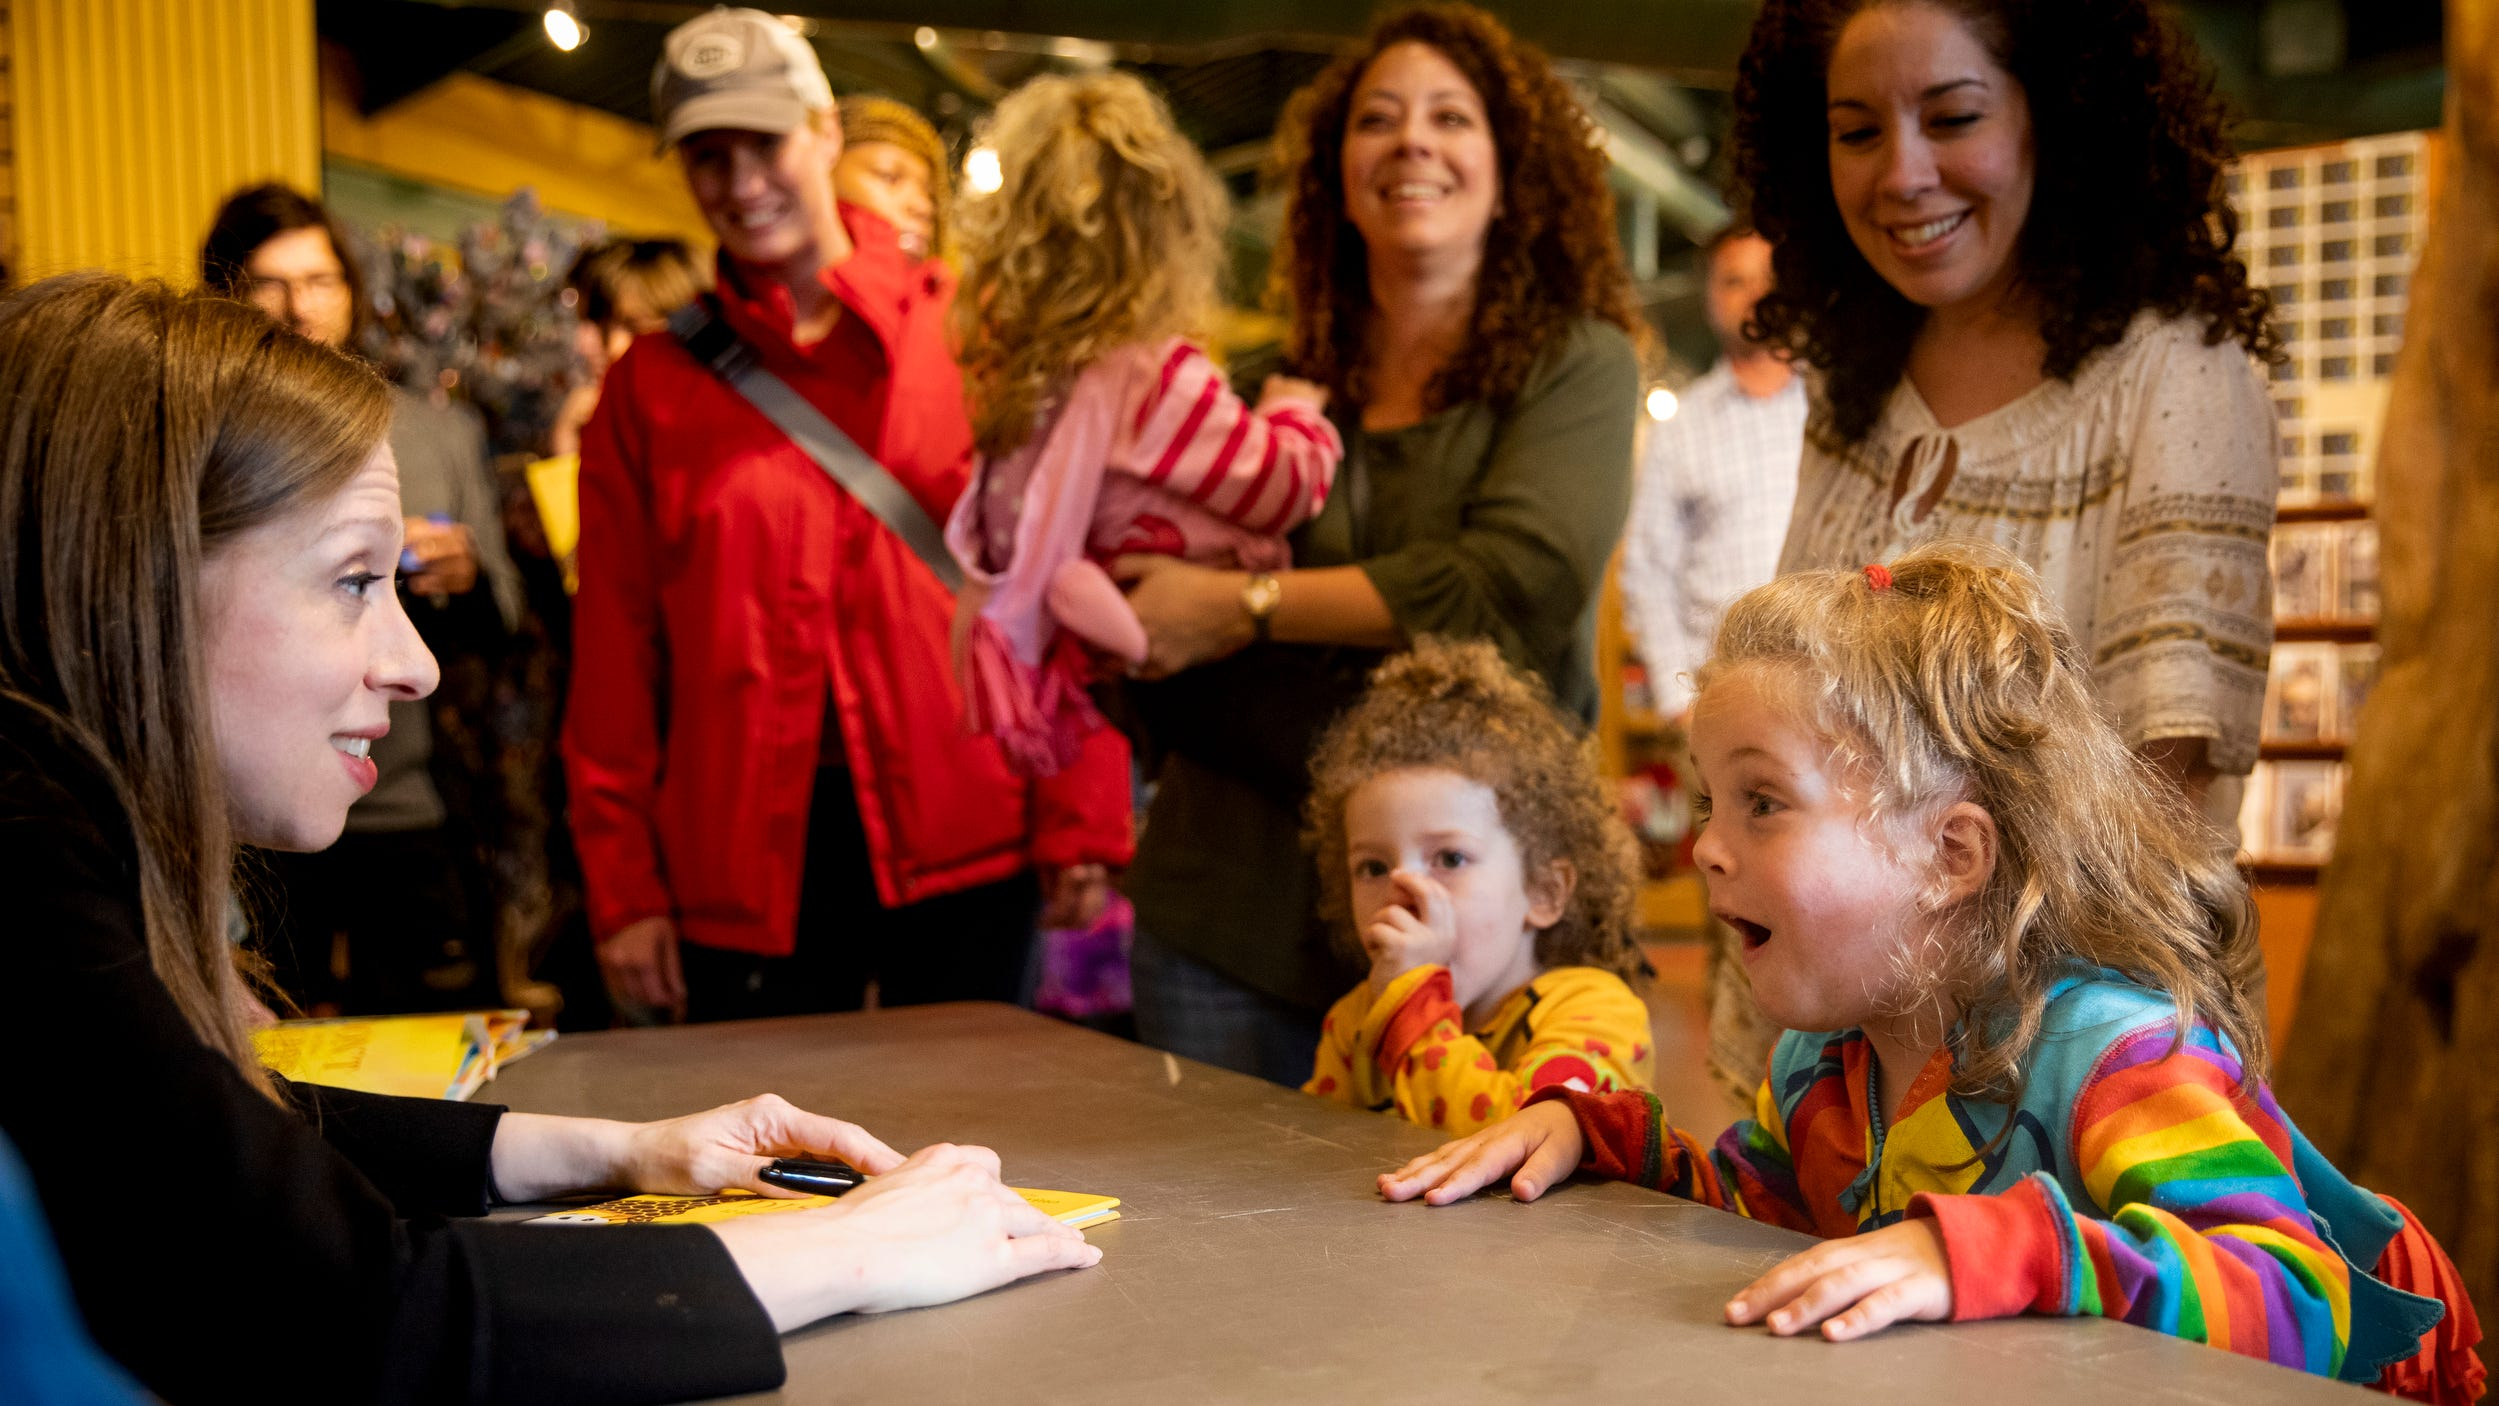 PHOTOS: Chelsea Clinton signs her new book at the Cincinnati Zoo